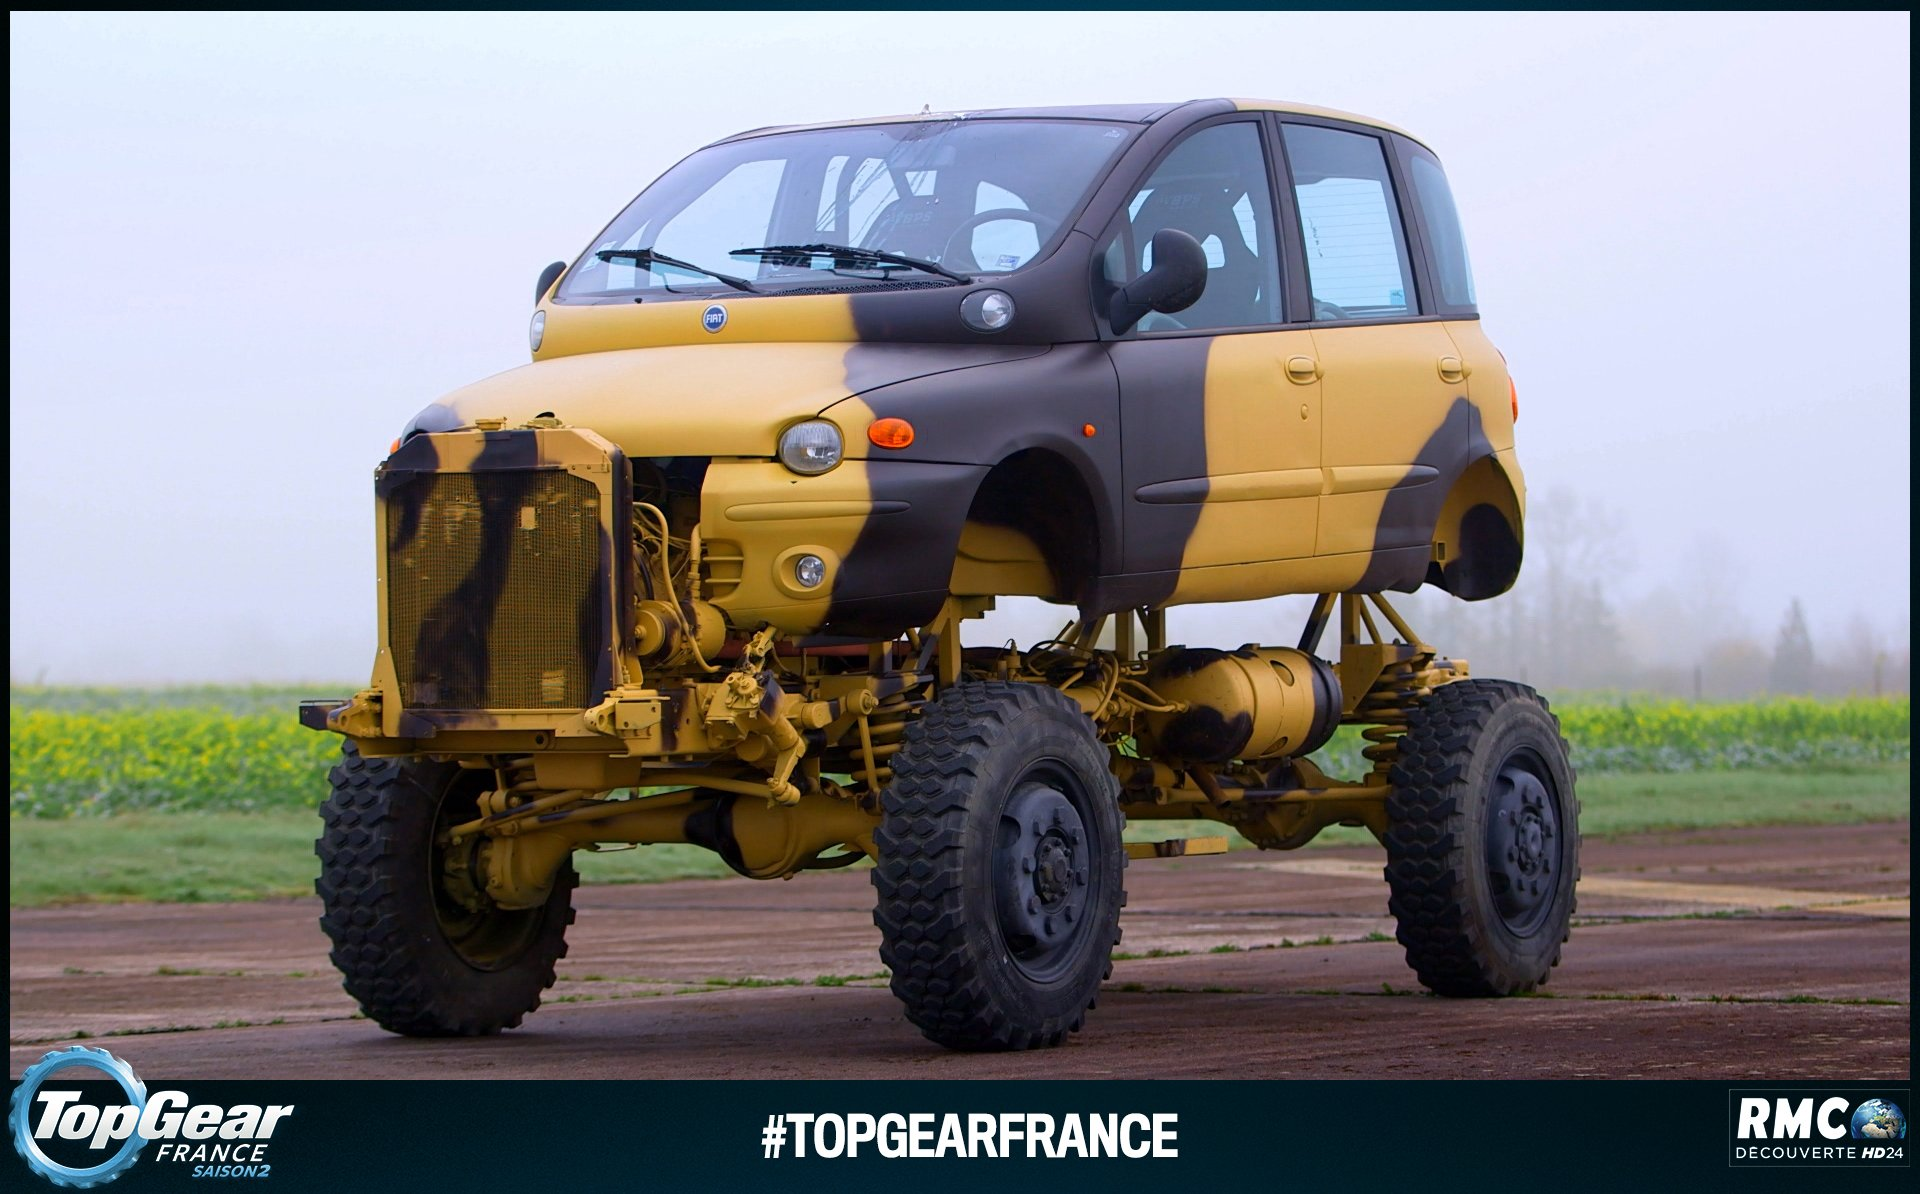 top gear france on twitter fiatfr multipla xxl by le tone vous aimez topgearfrance https. Black Bedroom Furniture Sets. Home Design Ideas